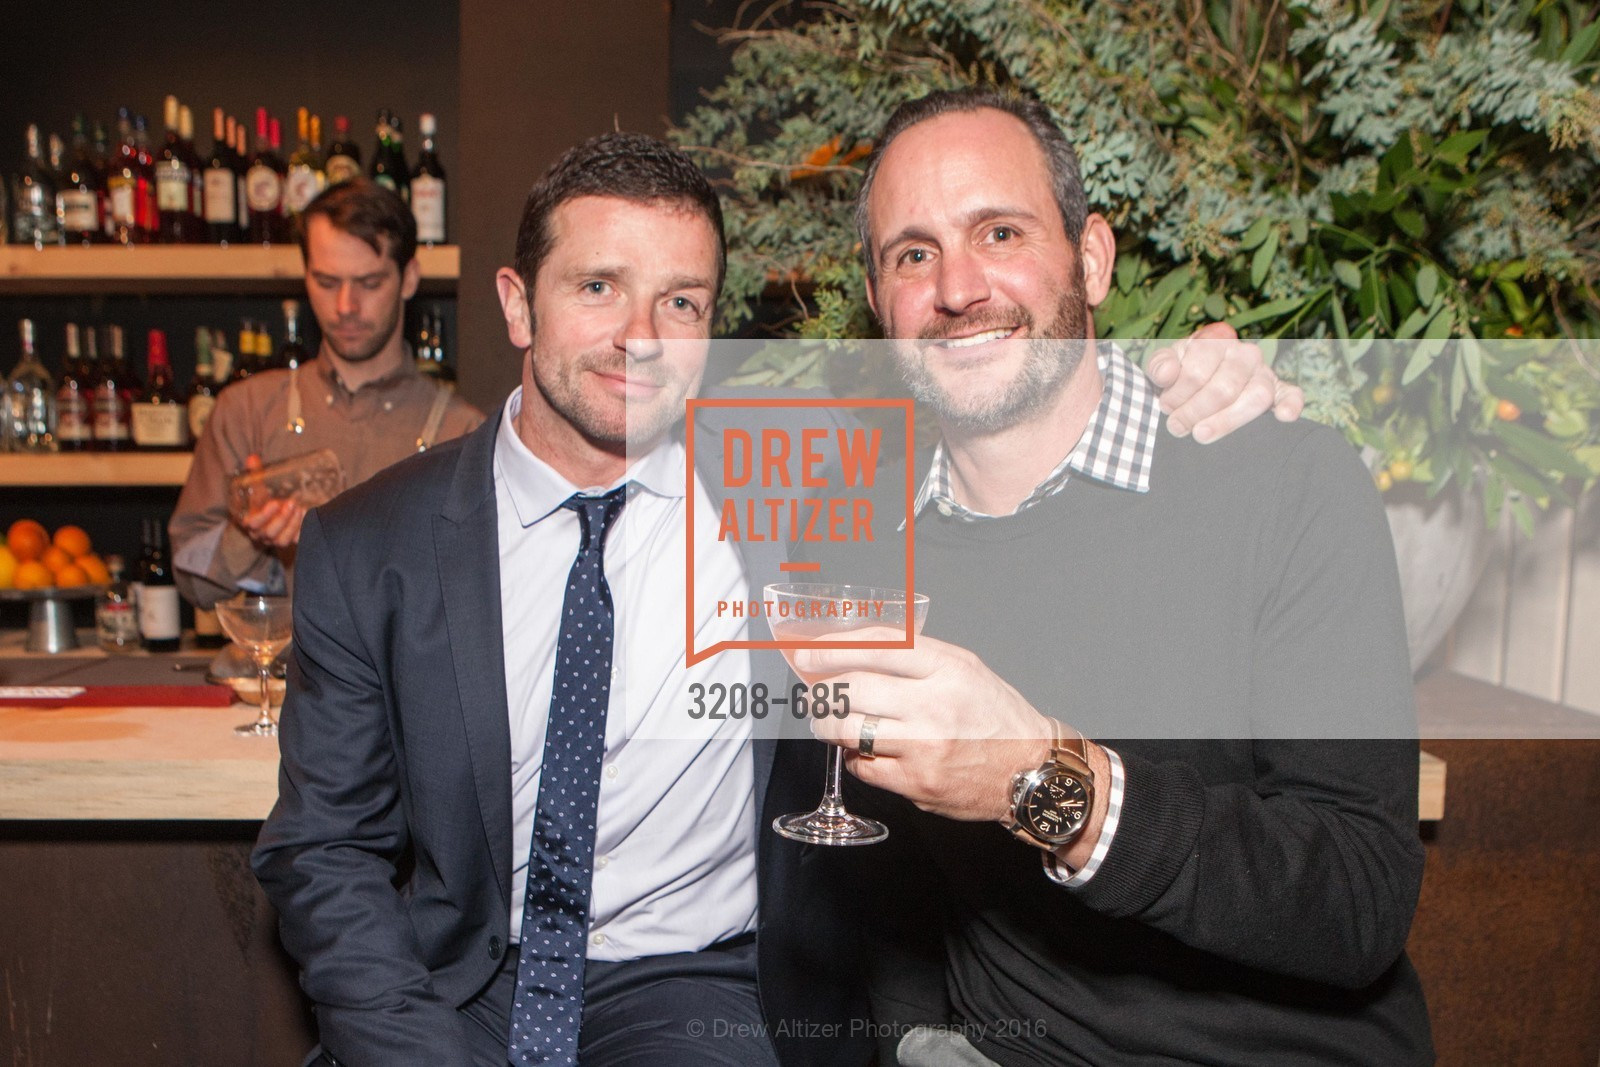 Tony Kelly, Brian Gianinno, FOG Design+Art Preview Gala, Fort Mason Center Festival Pavilion, January 13th, 2016,Drew Altizer, Drew Altizer Photography, full-service event agency, private events, San Francisco photographer, photographer California